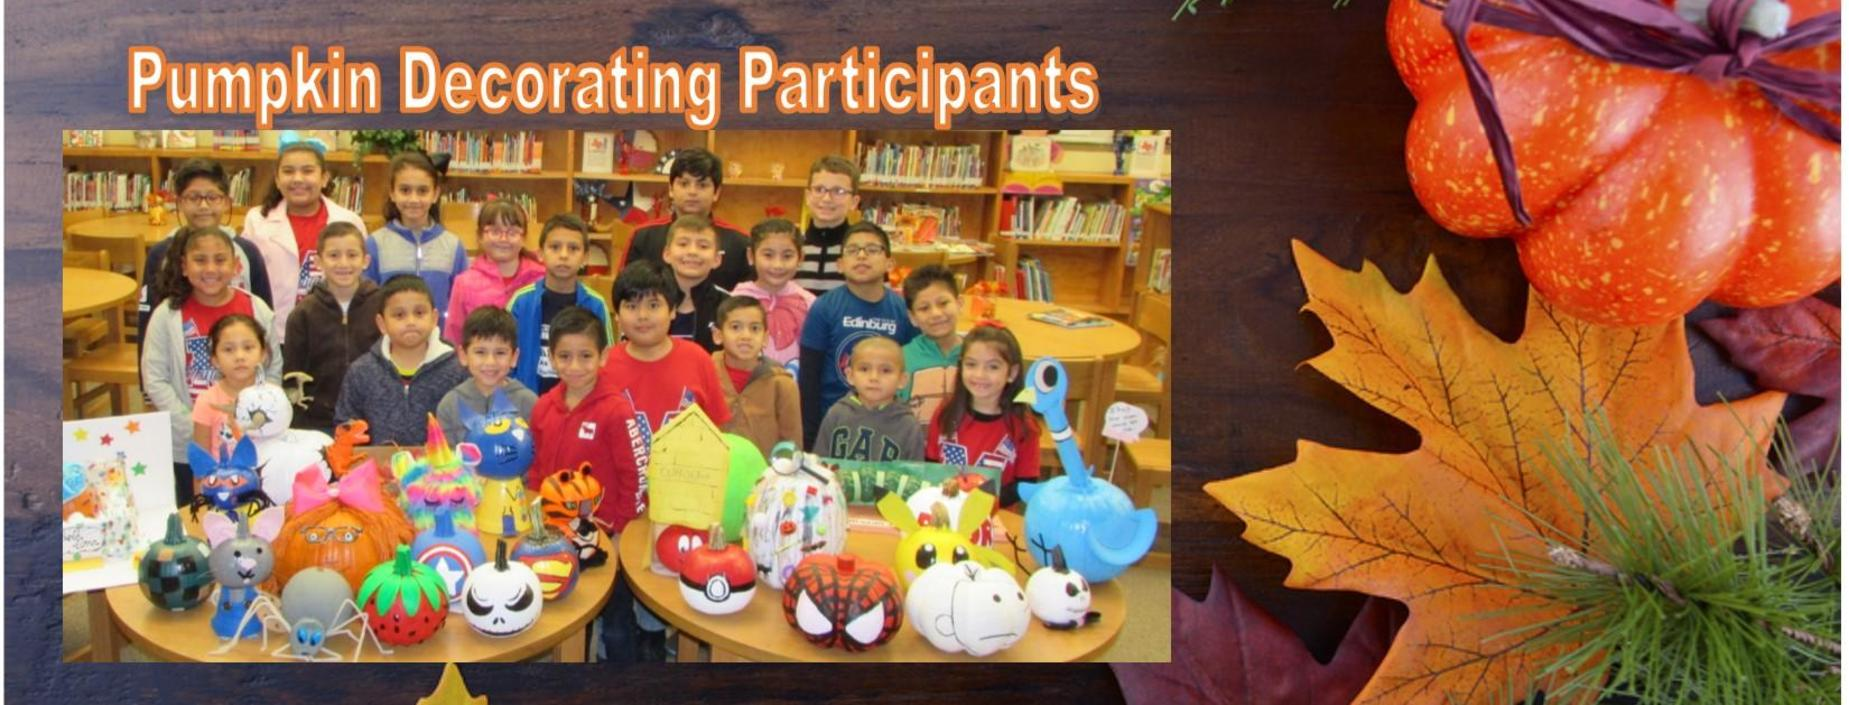 pumpkin decorating participants